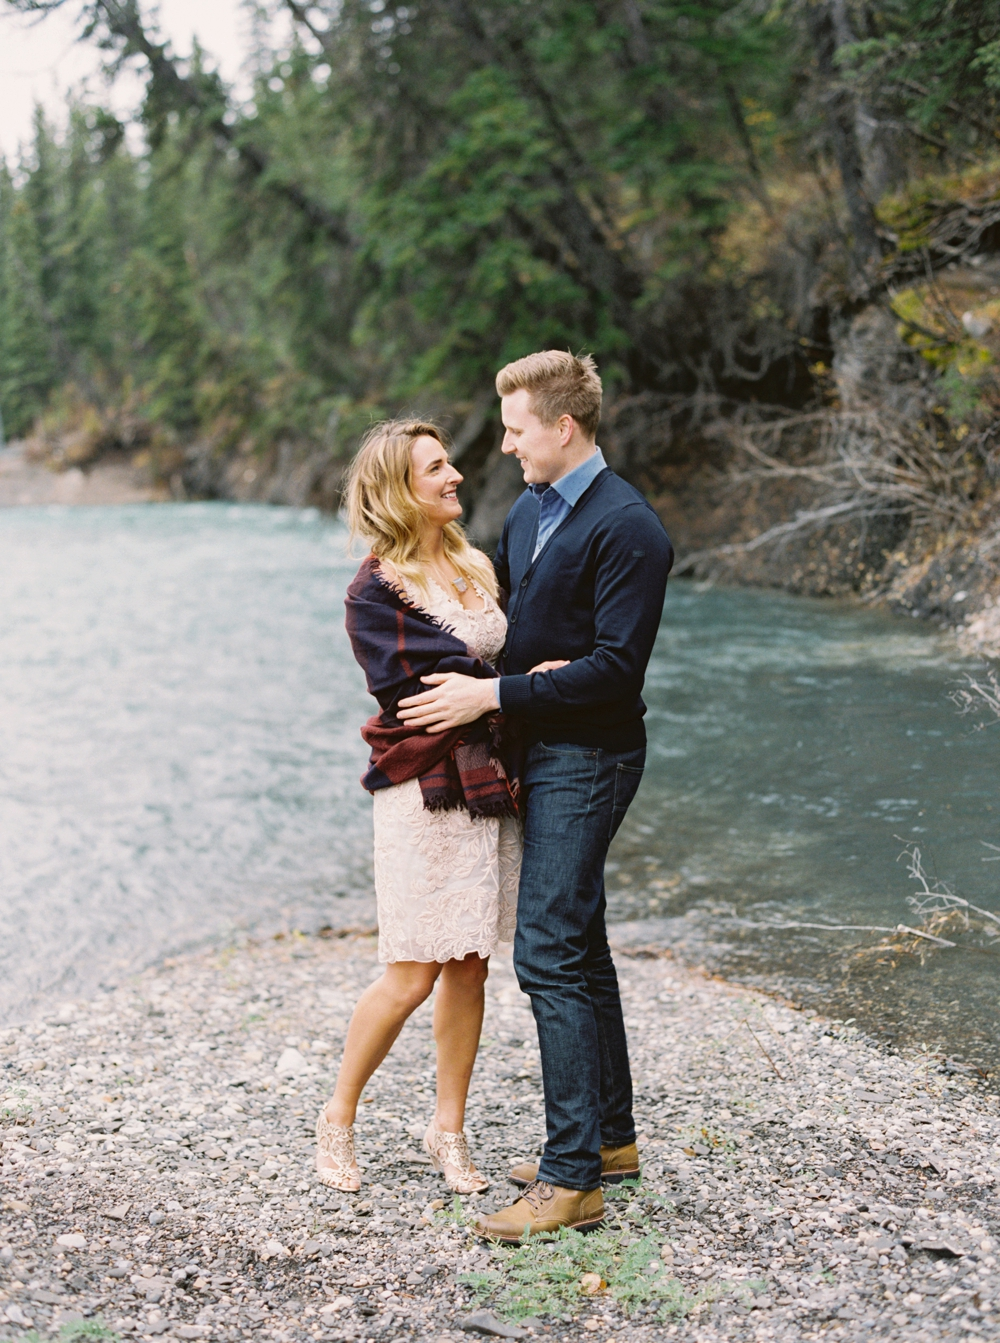 kananaskis engagement session | mountain engagement photographers | calgary wedding photographer | Justine Milton photography